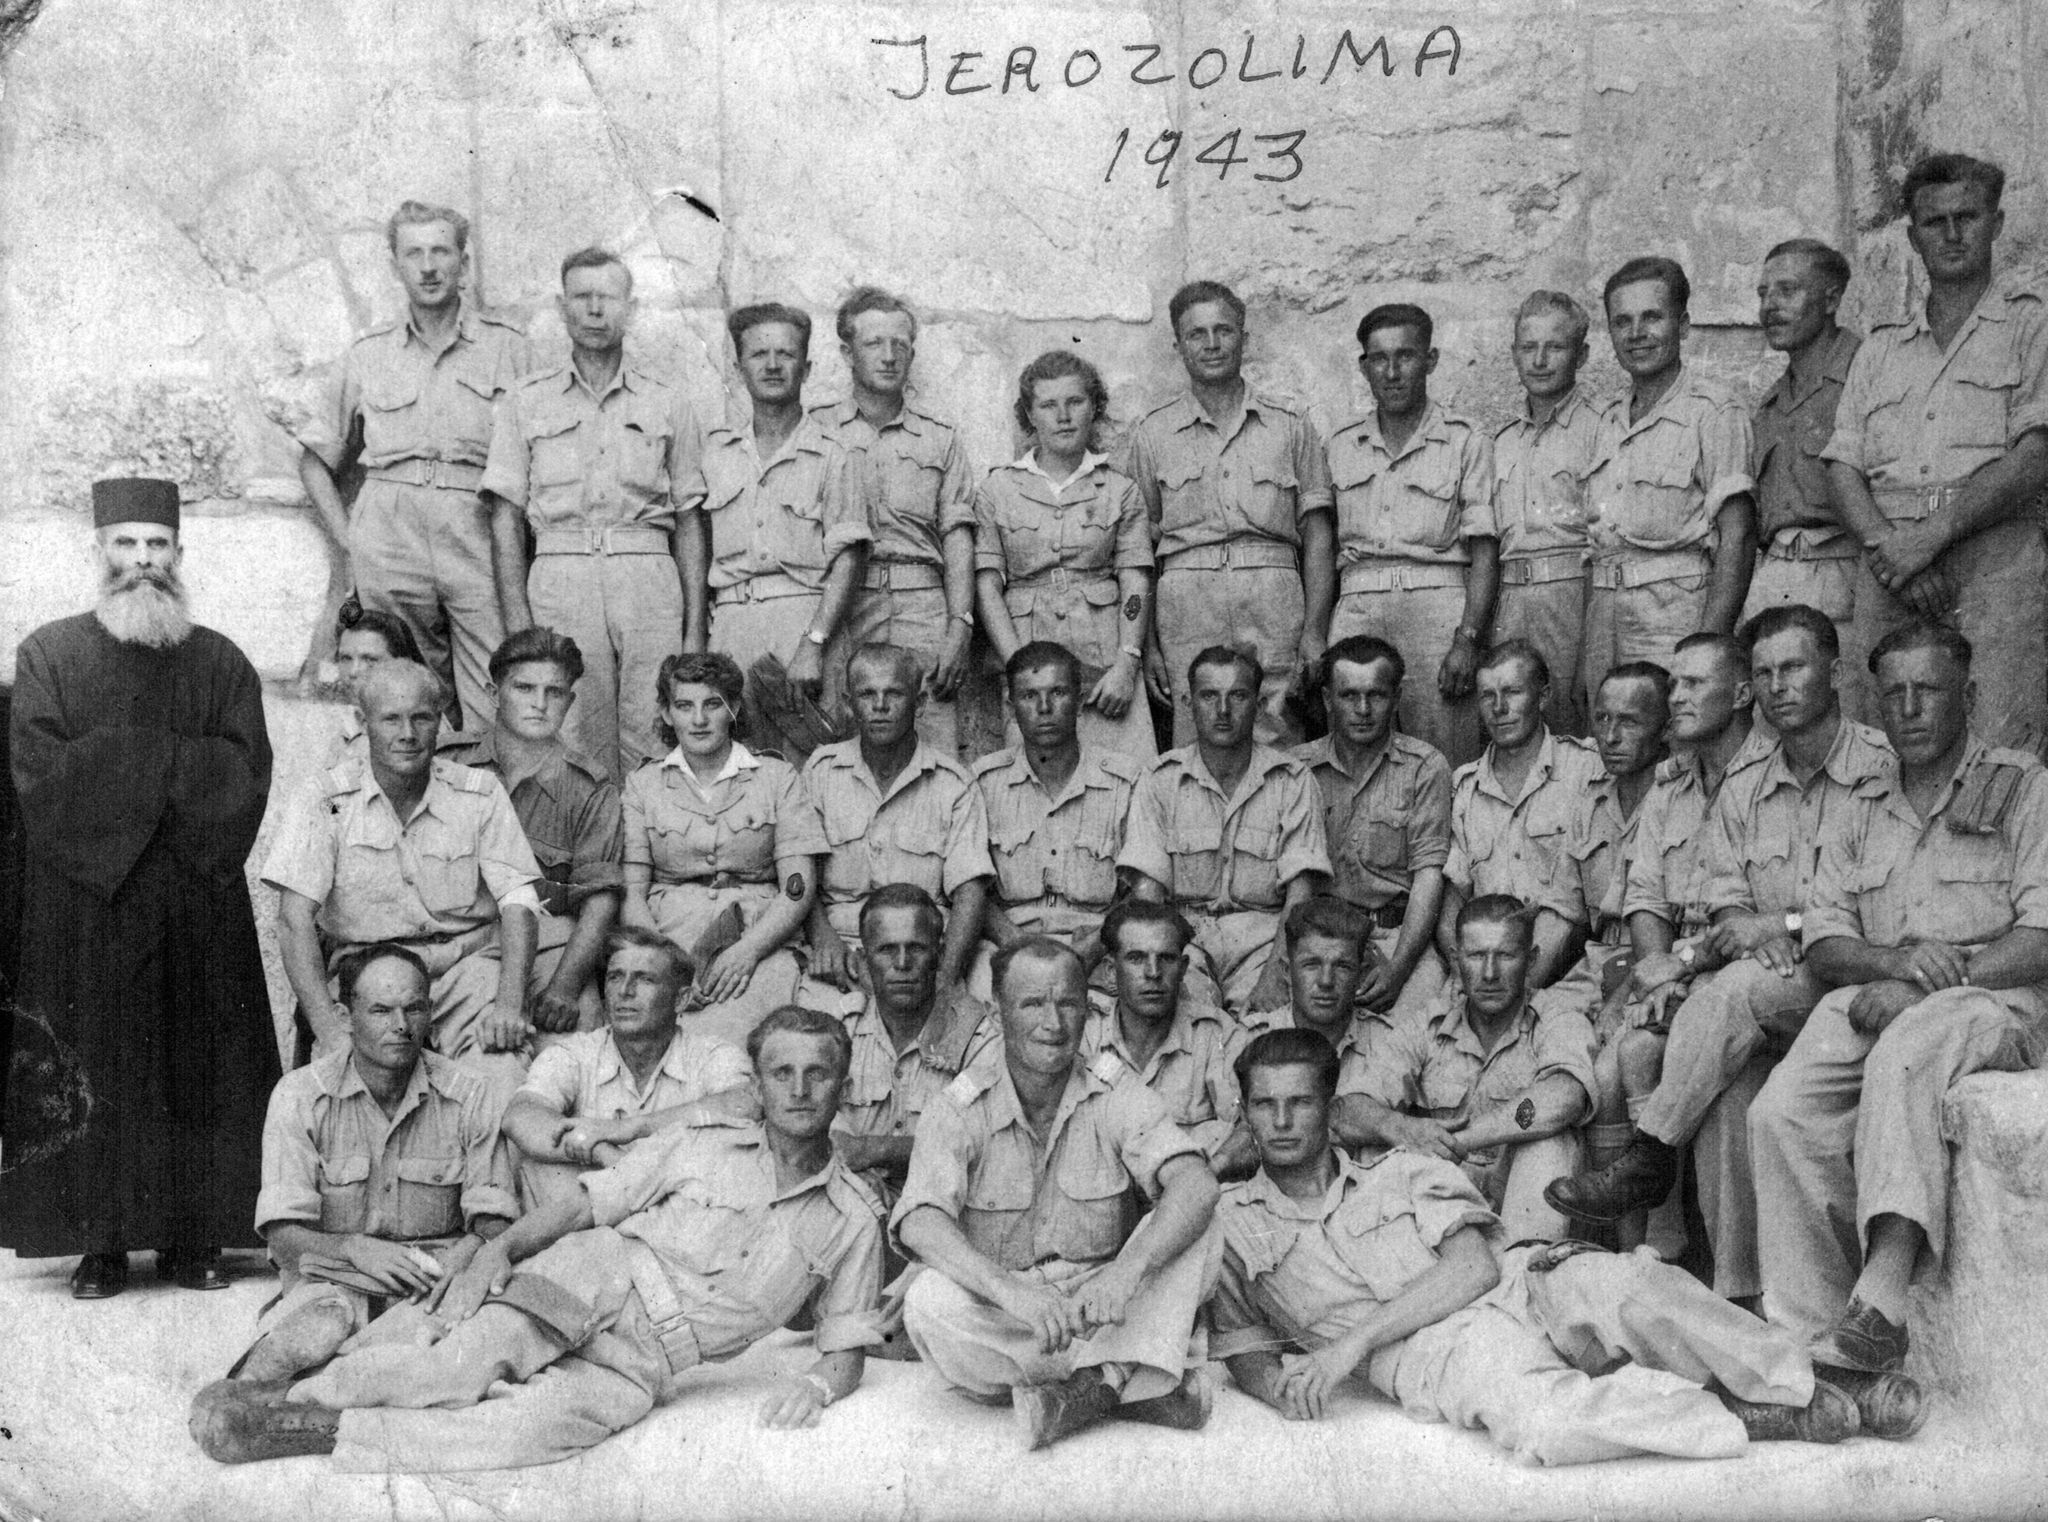 Krystyna visited Jerusalem with her father's division in 1943